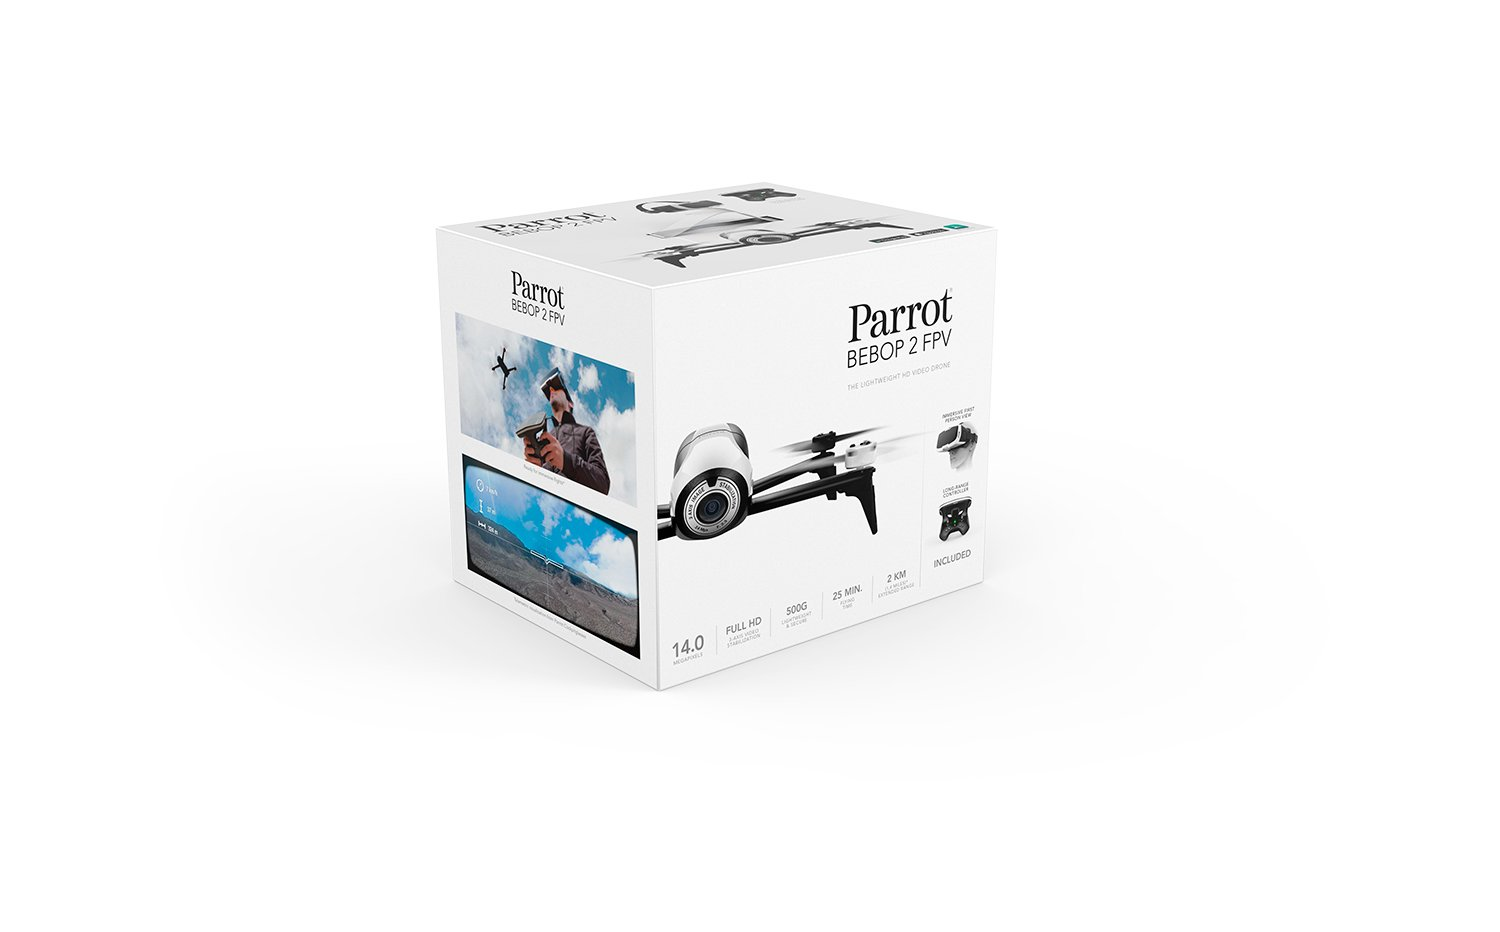 Amazon.com: Parrot Bebop 2 FPV - Up to 25 Minutes of Flight time, FPV Goggles, Compact Drone: Camera & Photo